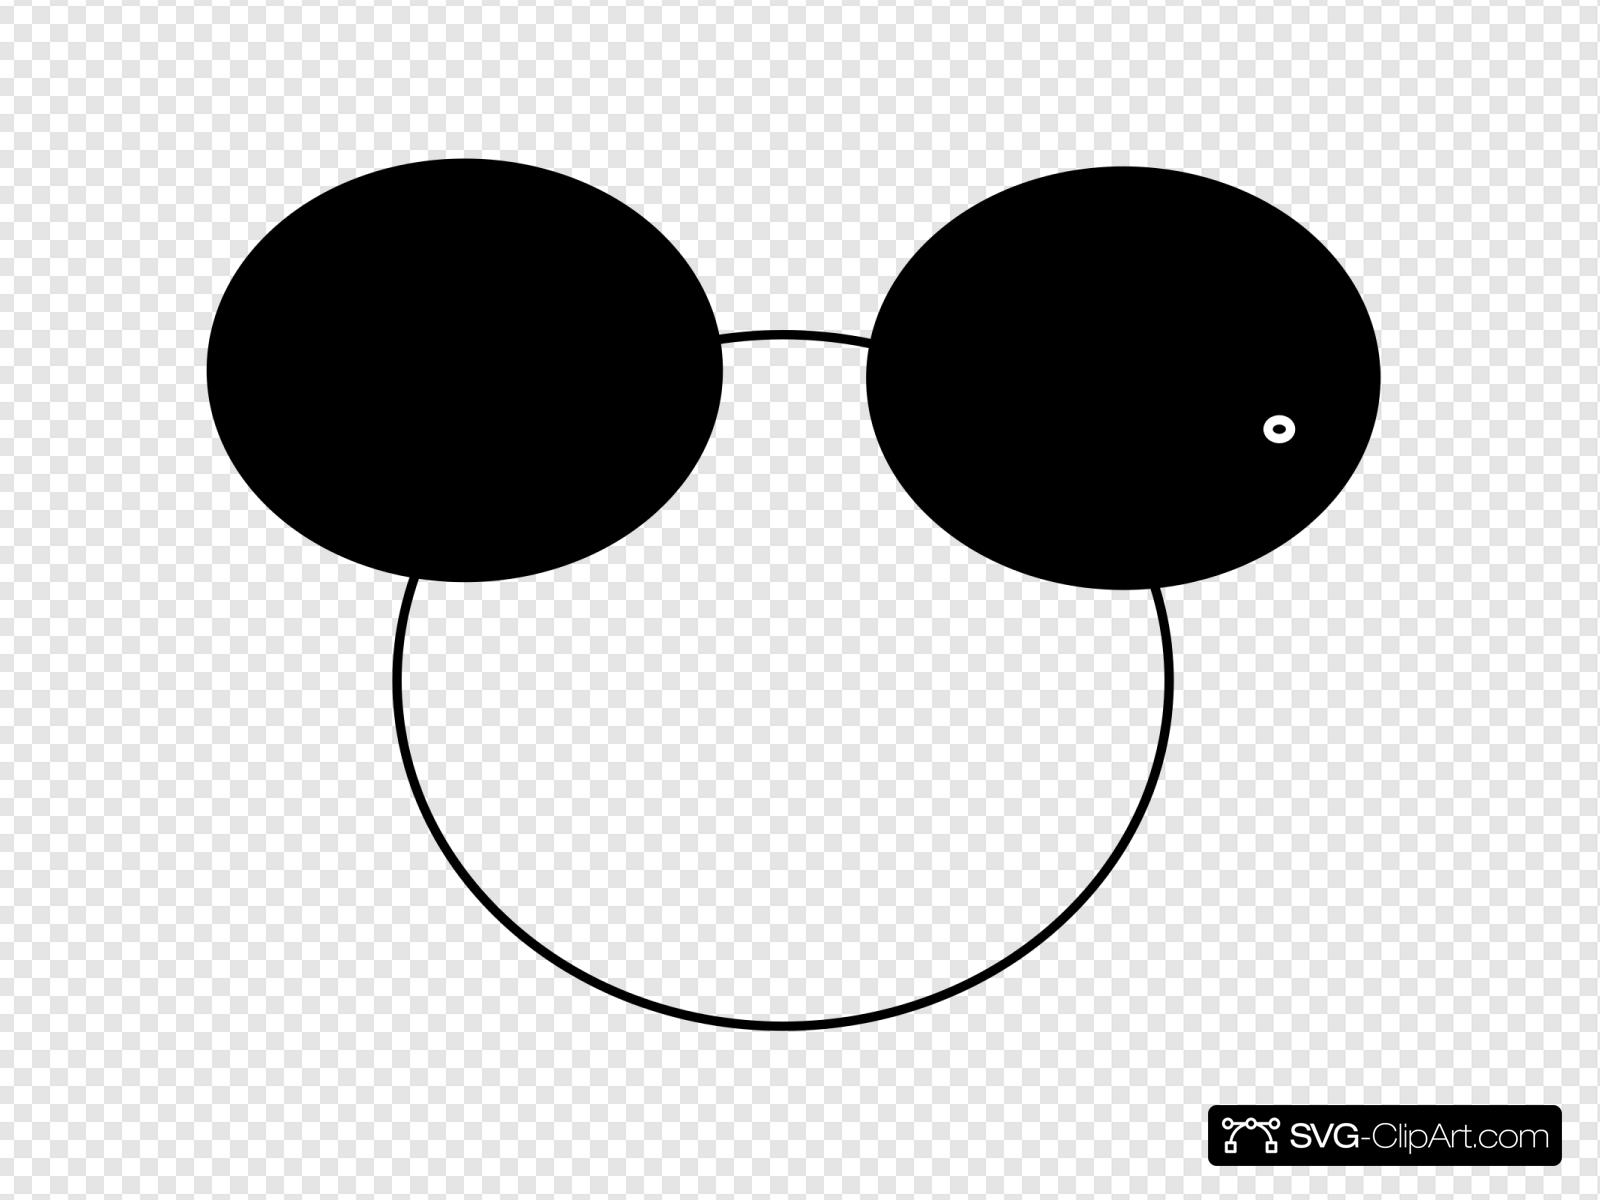 Mickey Mouse Drawing Pictures - Mickey Mouse Cartoon Drawings , Free  Transparent Clipart - ClipartKey